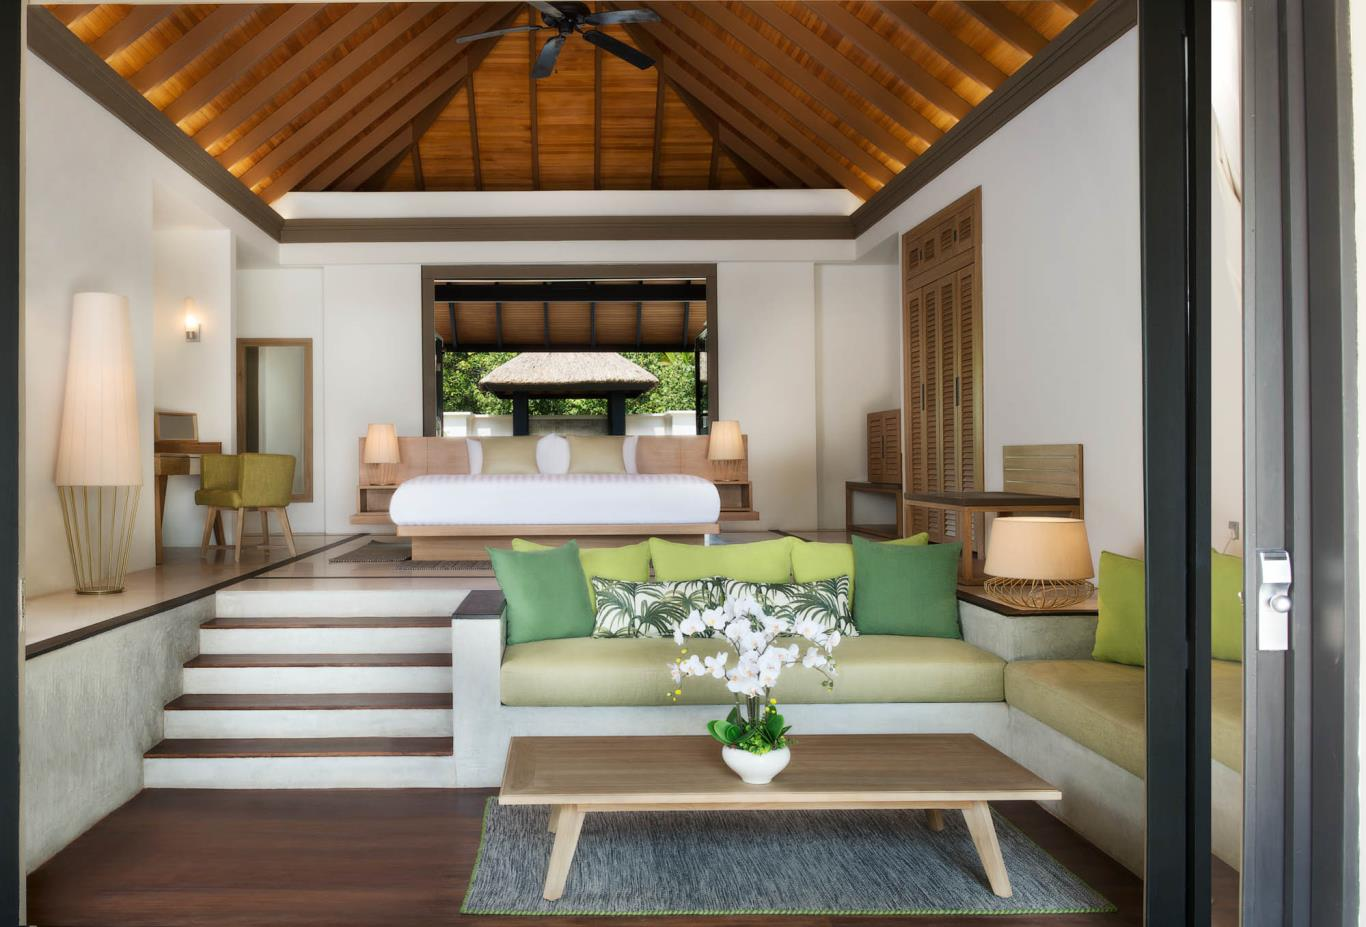 Beach Bungalow With Plunge Pool Interior